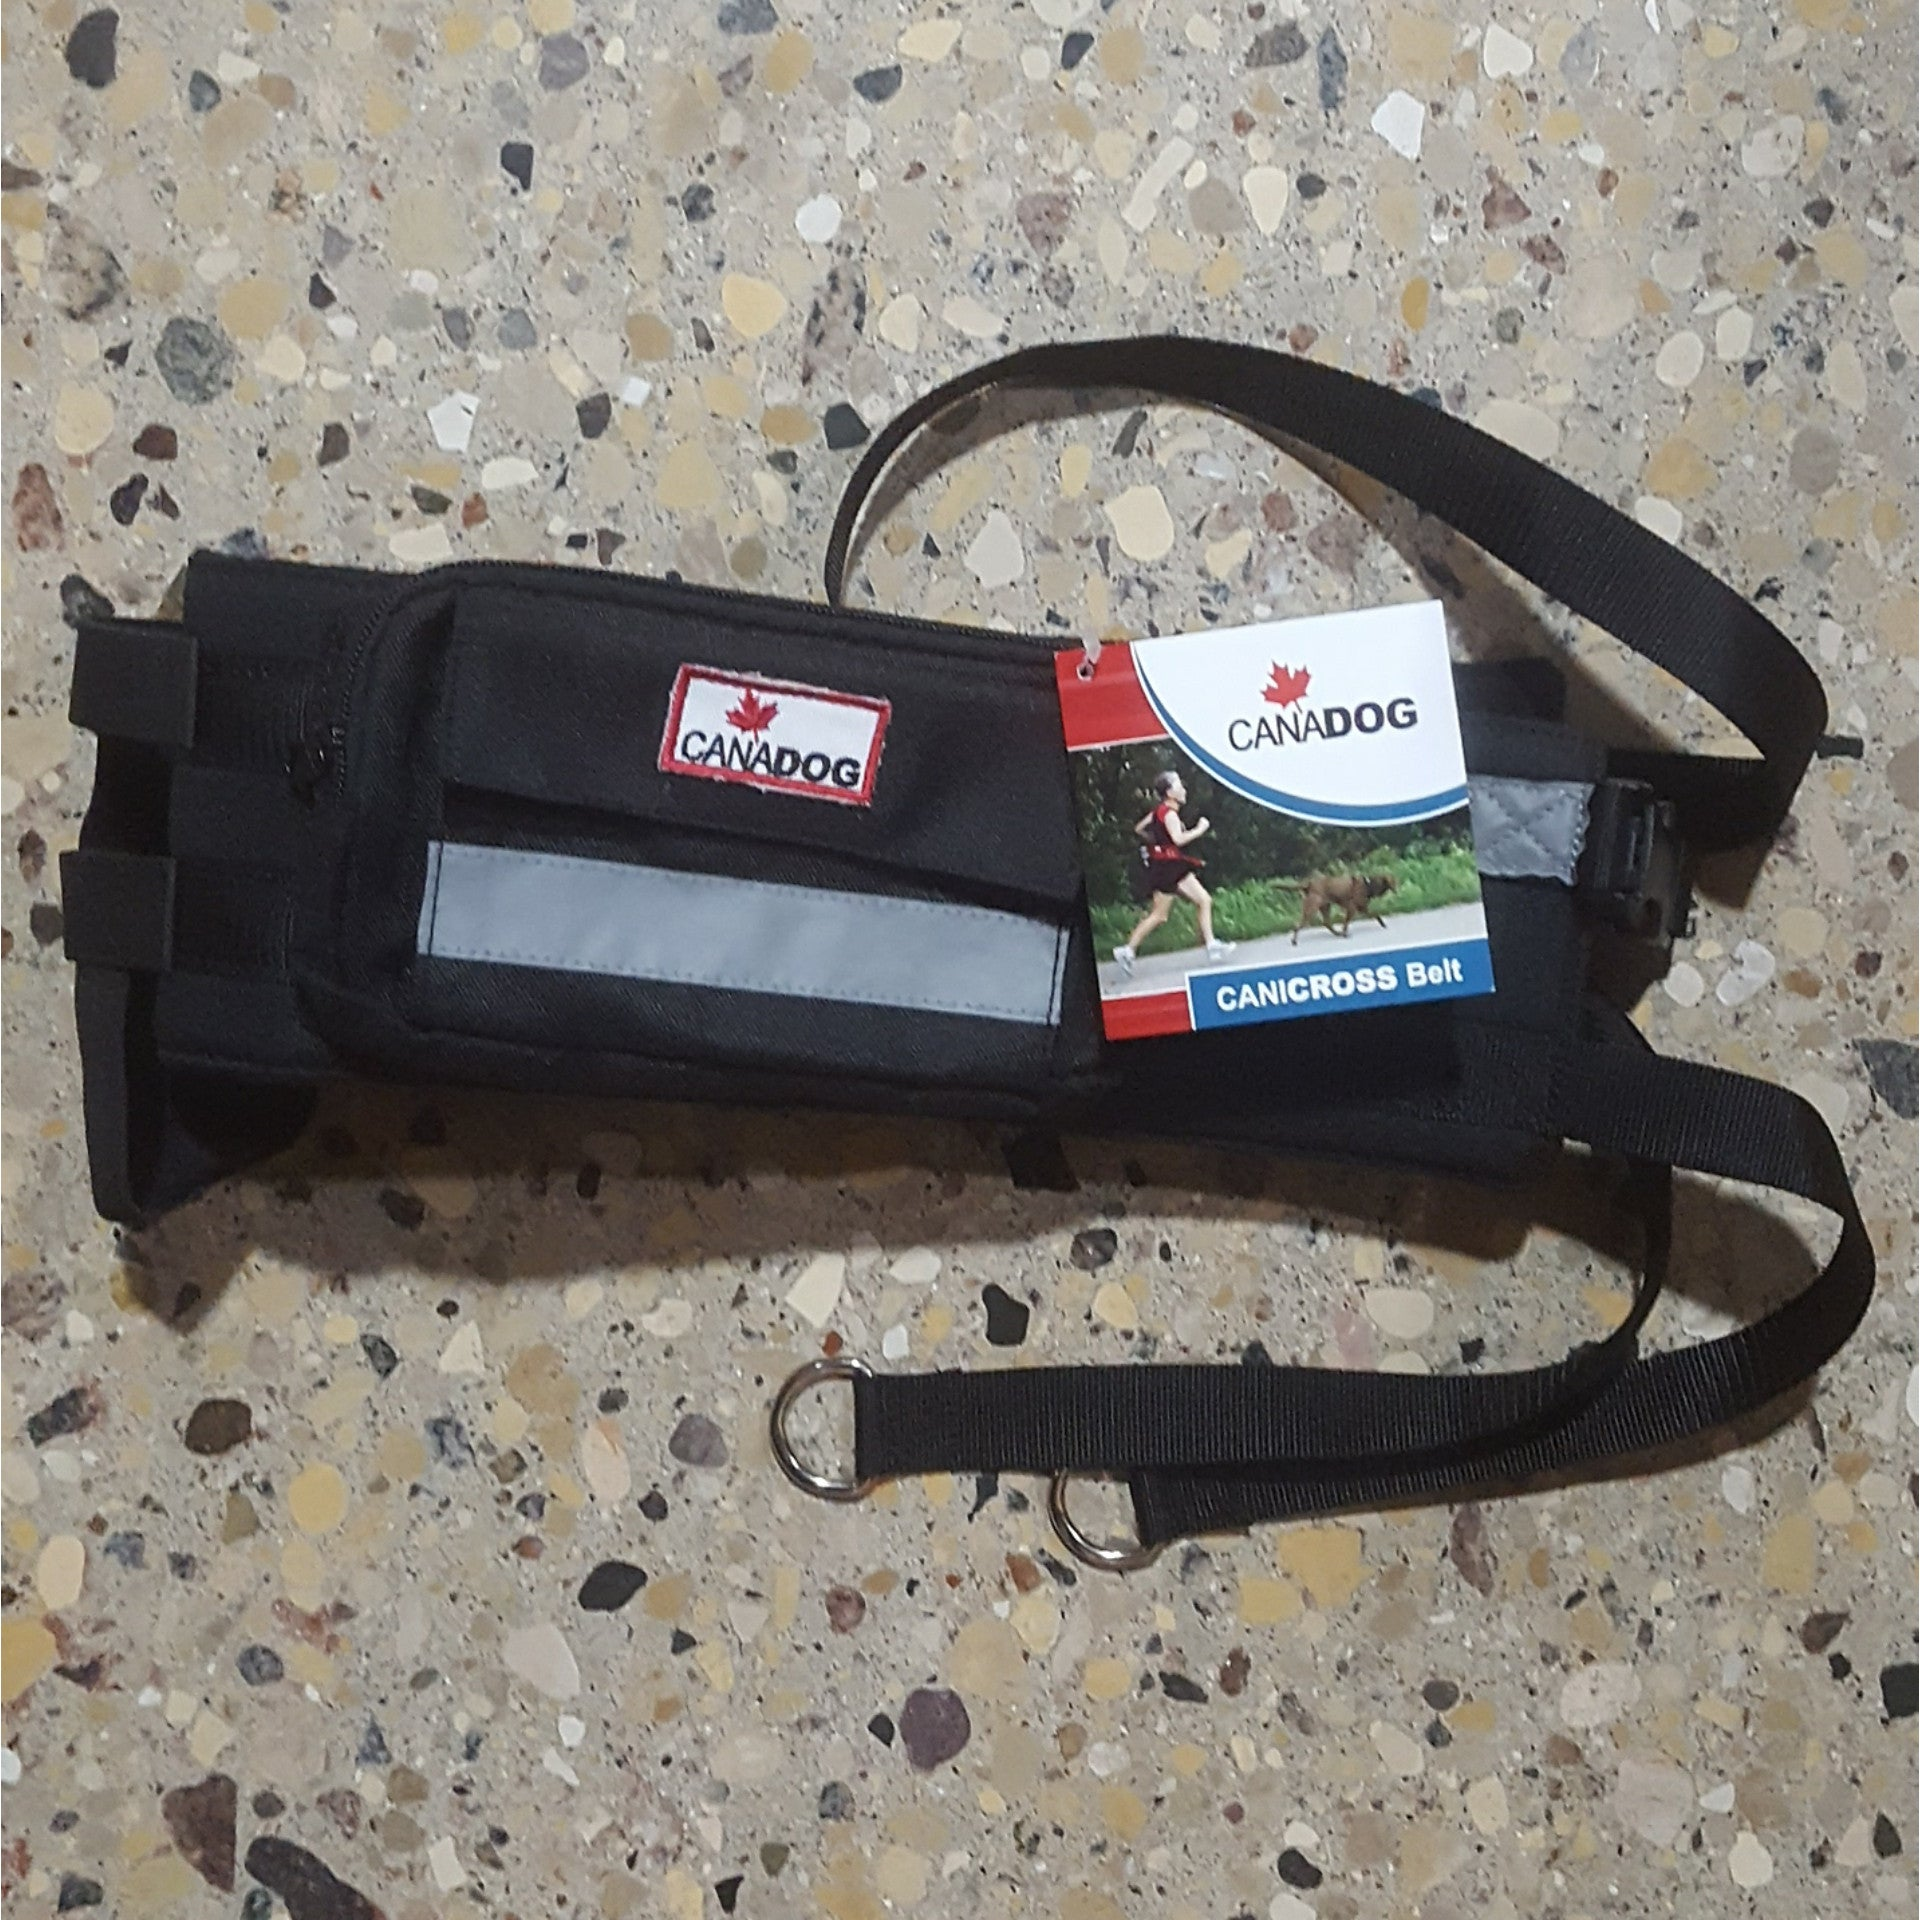 Canicross walking jogging belt